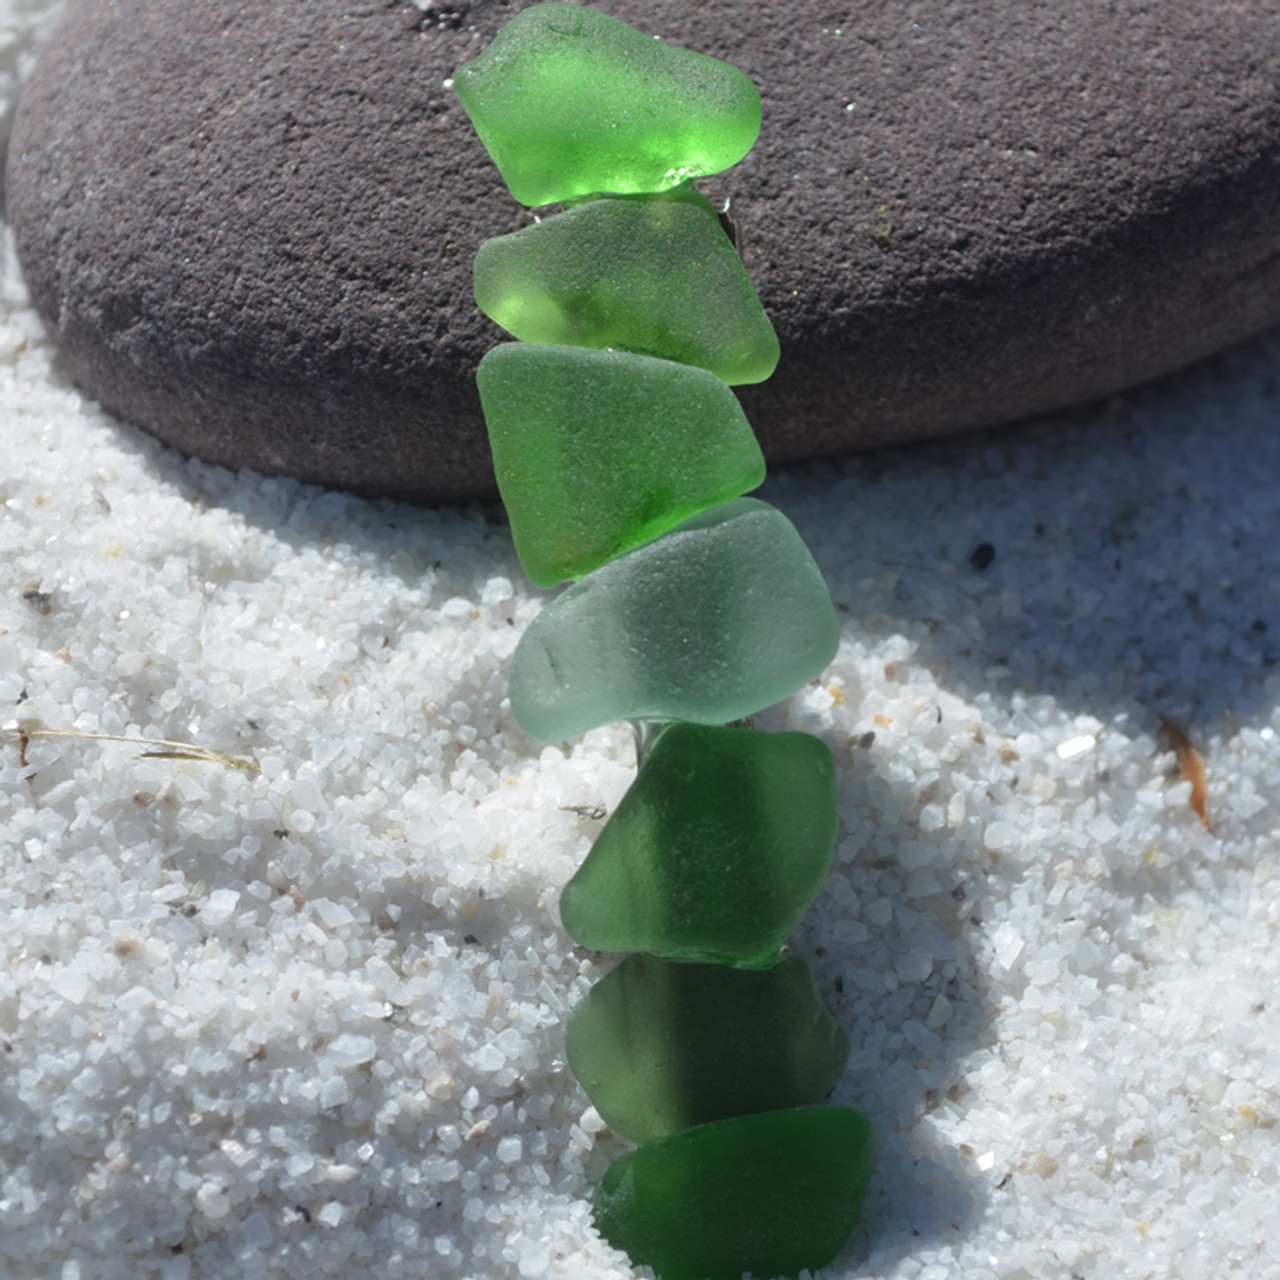 Hair Clip in Shades of Green Sea Glass French Barrette - 60 mm - Made to order